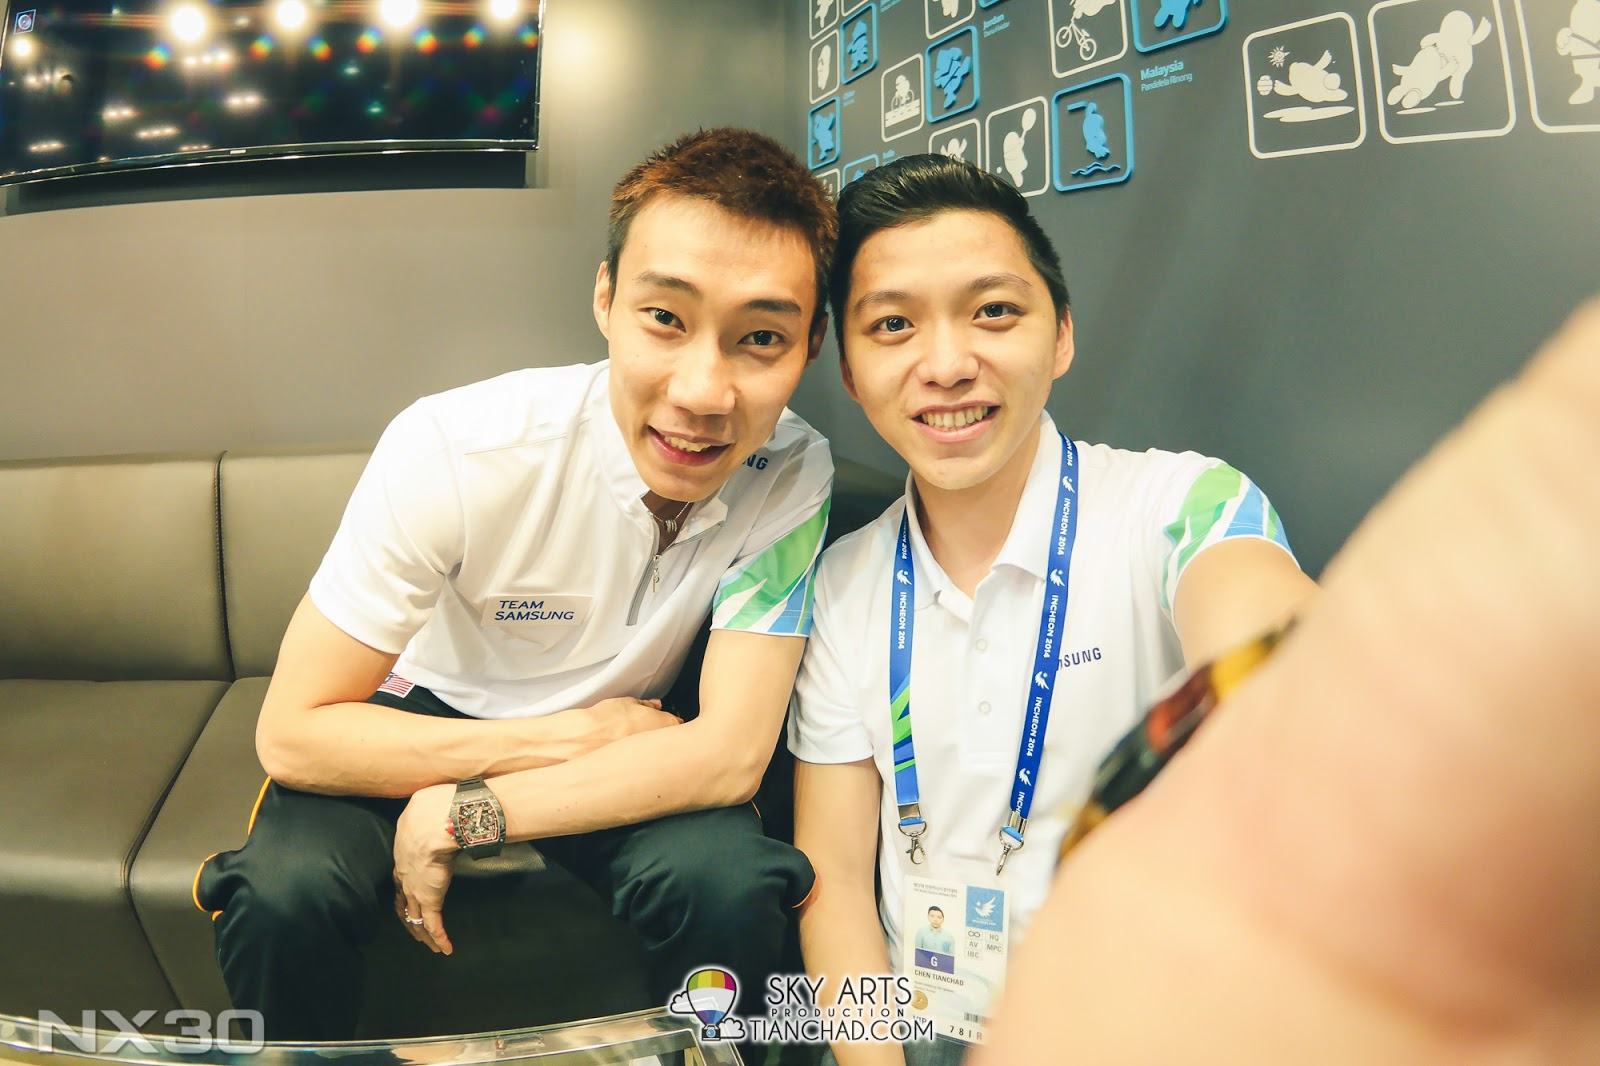 #TCSelfie with Dato' Lee Chong Wei in Korea using NX30 and the 10mm Fisheye lens